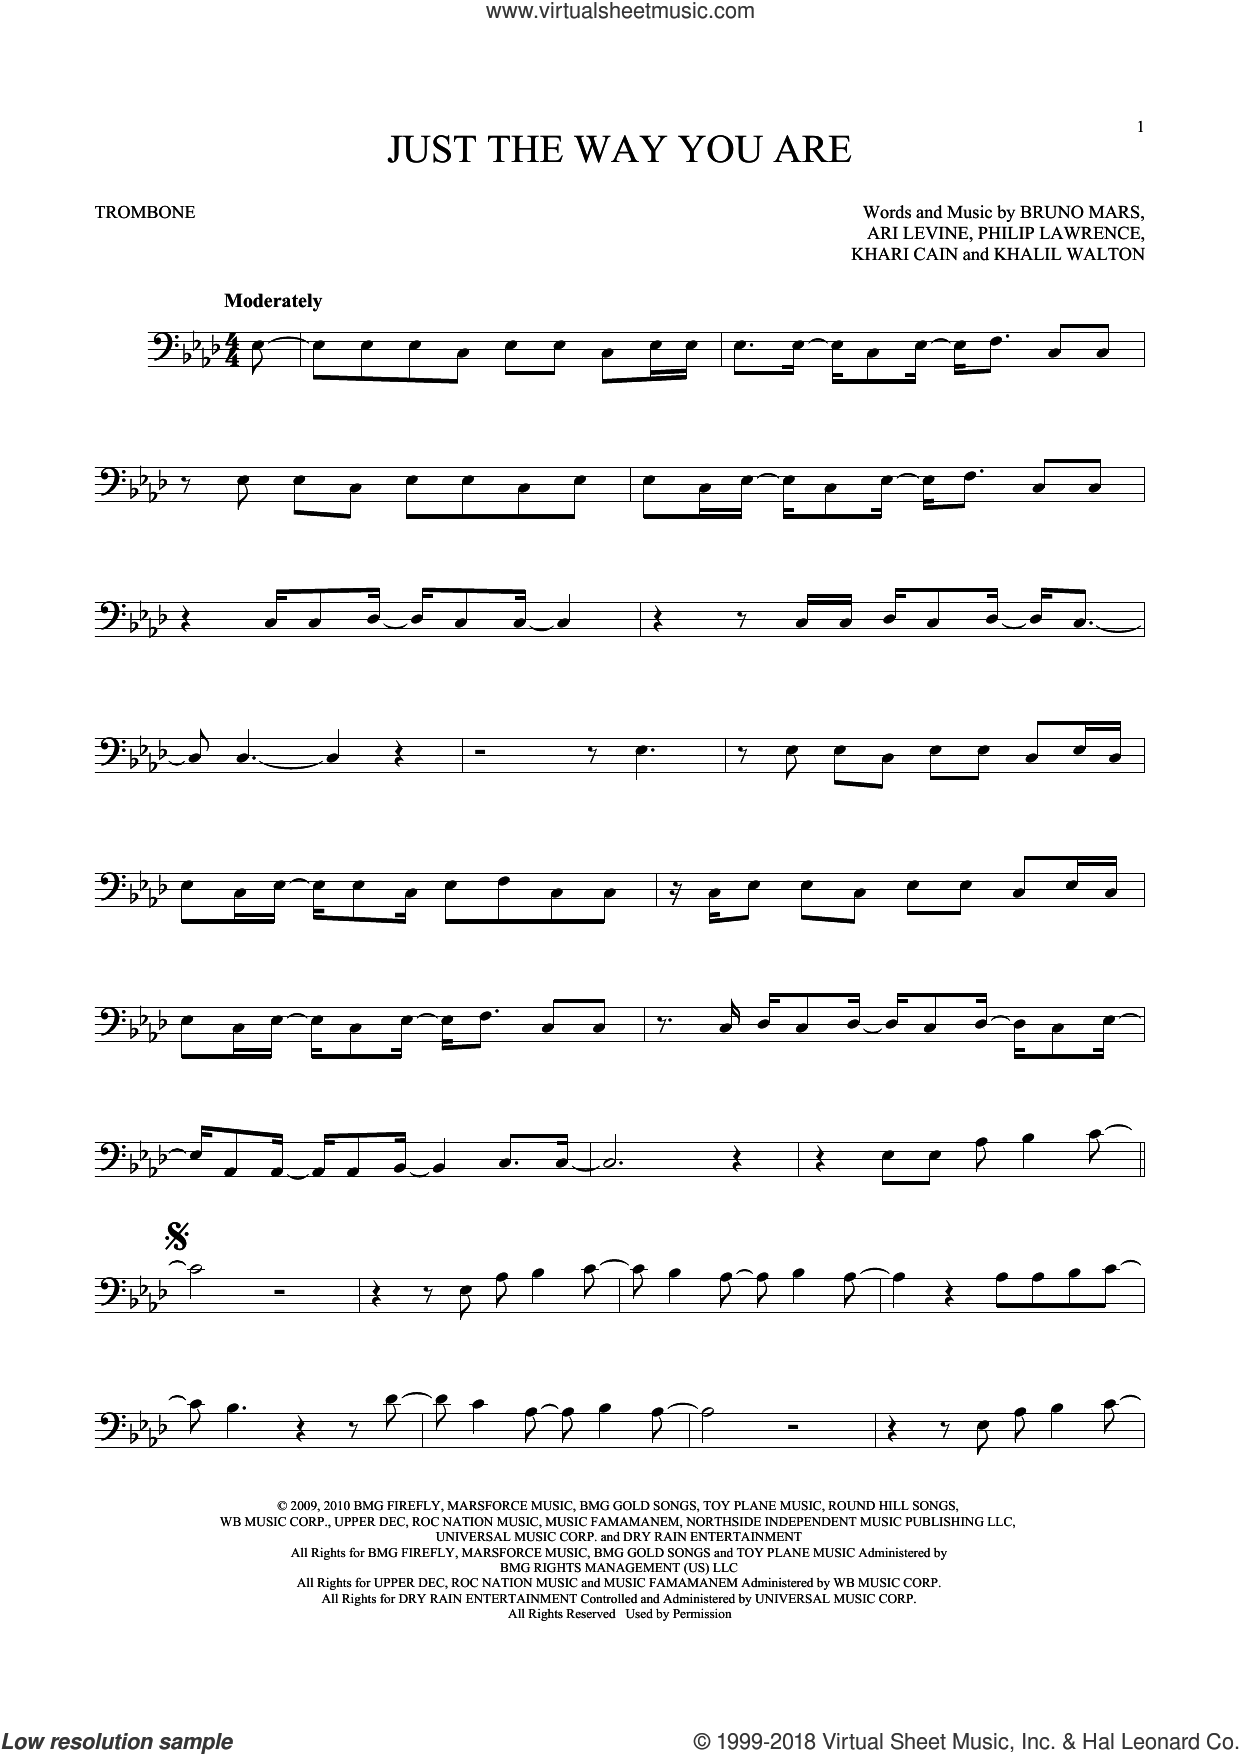 Just The Way You Are sheet music for trombone solo by Bruno Mars, Ari Levine, Khalil Walton, Khari Cain and Philip Lawrence, intermediate skill level